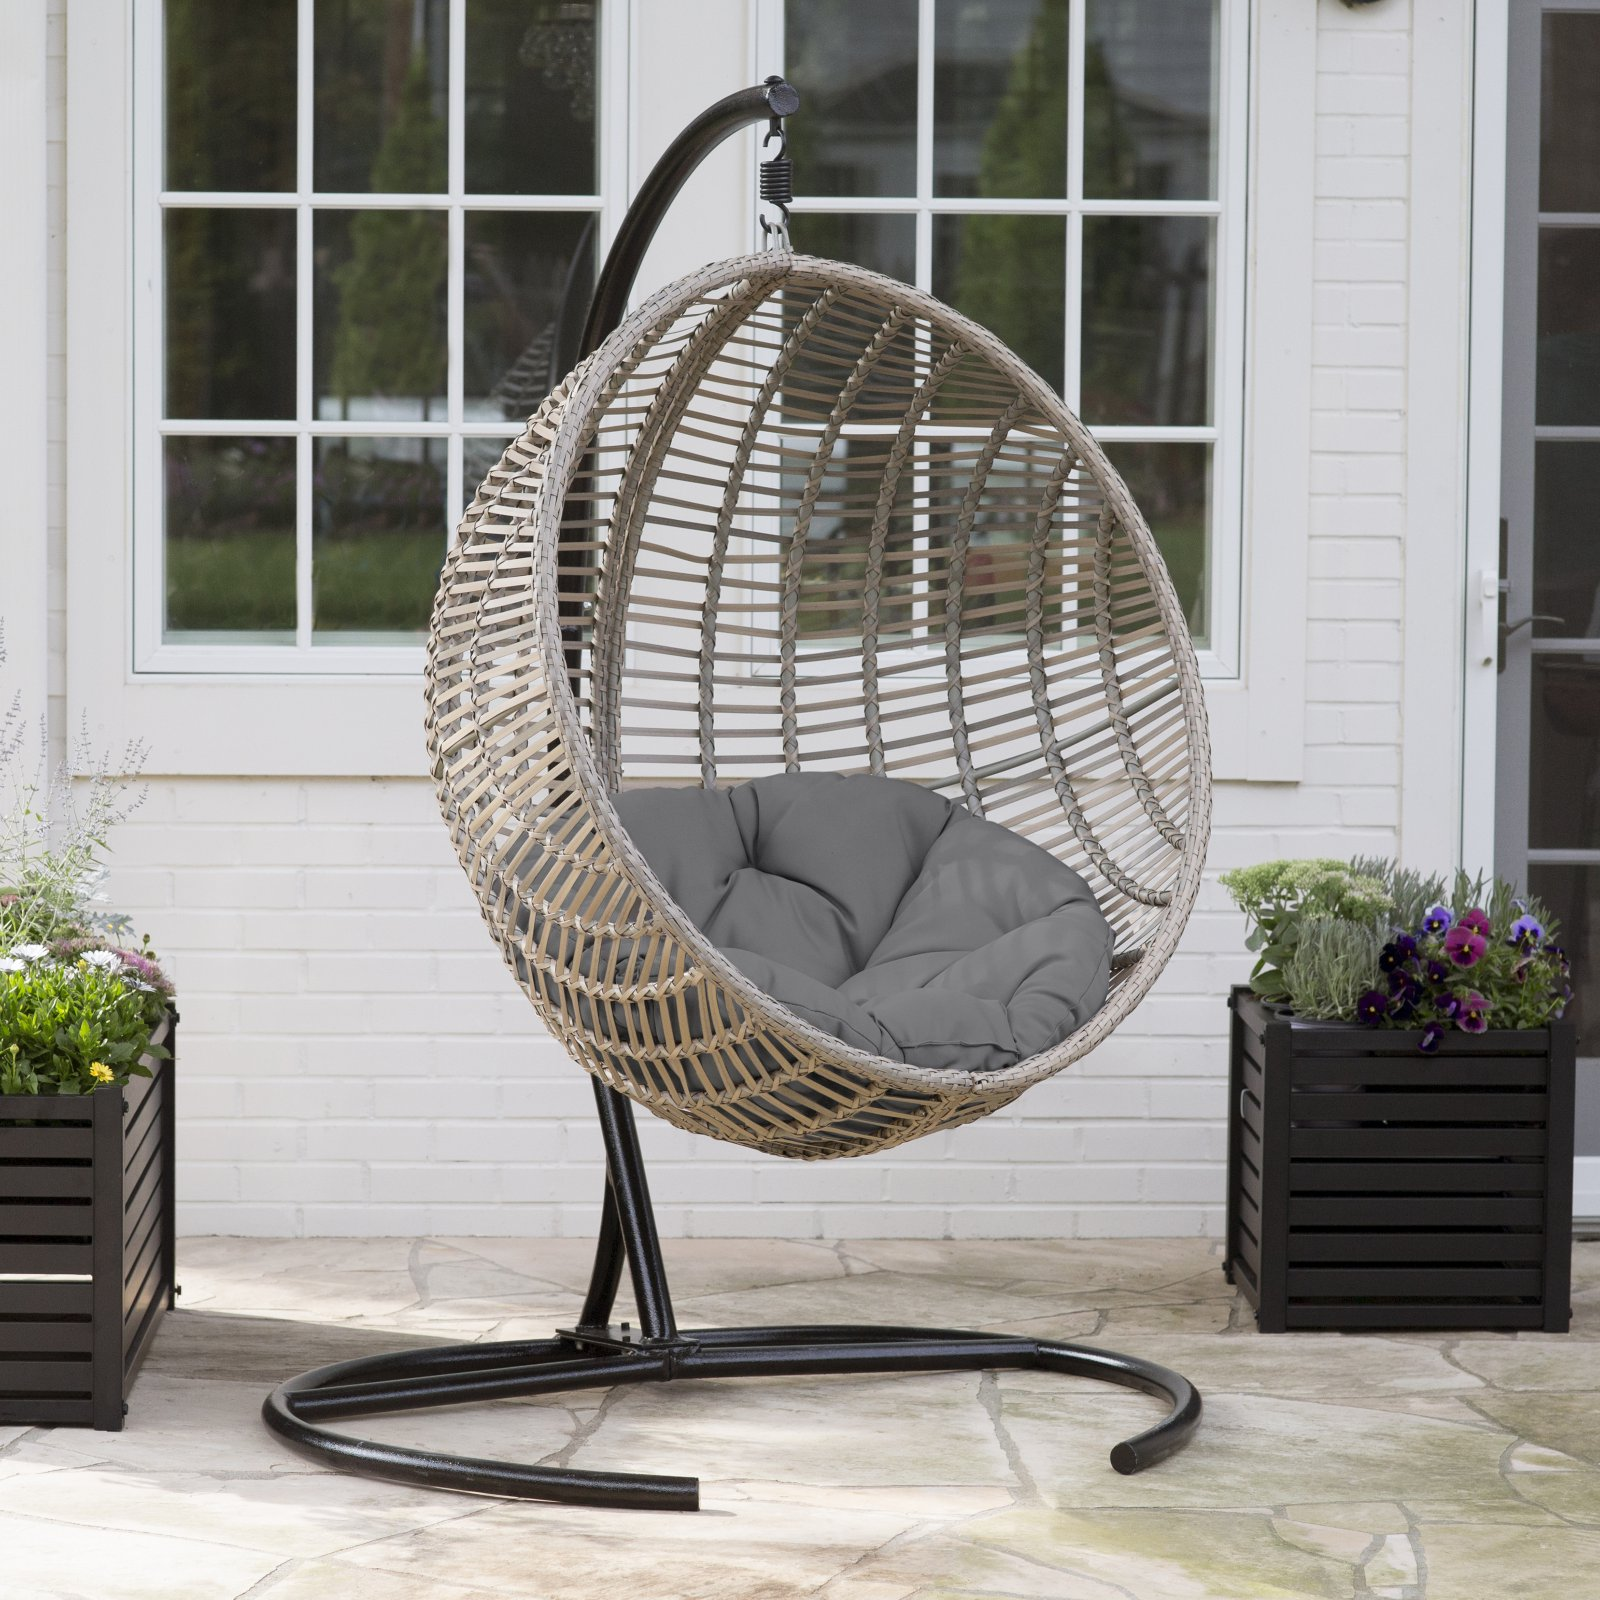 Attirant Island Bay Resin Wicker Kambree Rib Hanging Egg Chair With Cushion And Stand